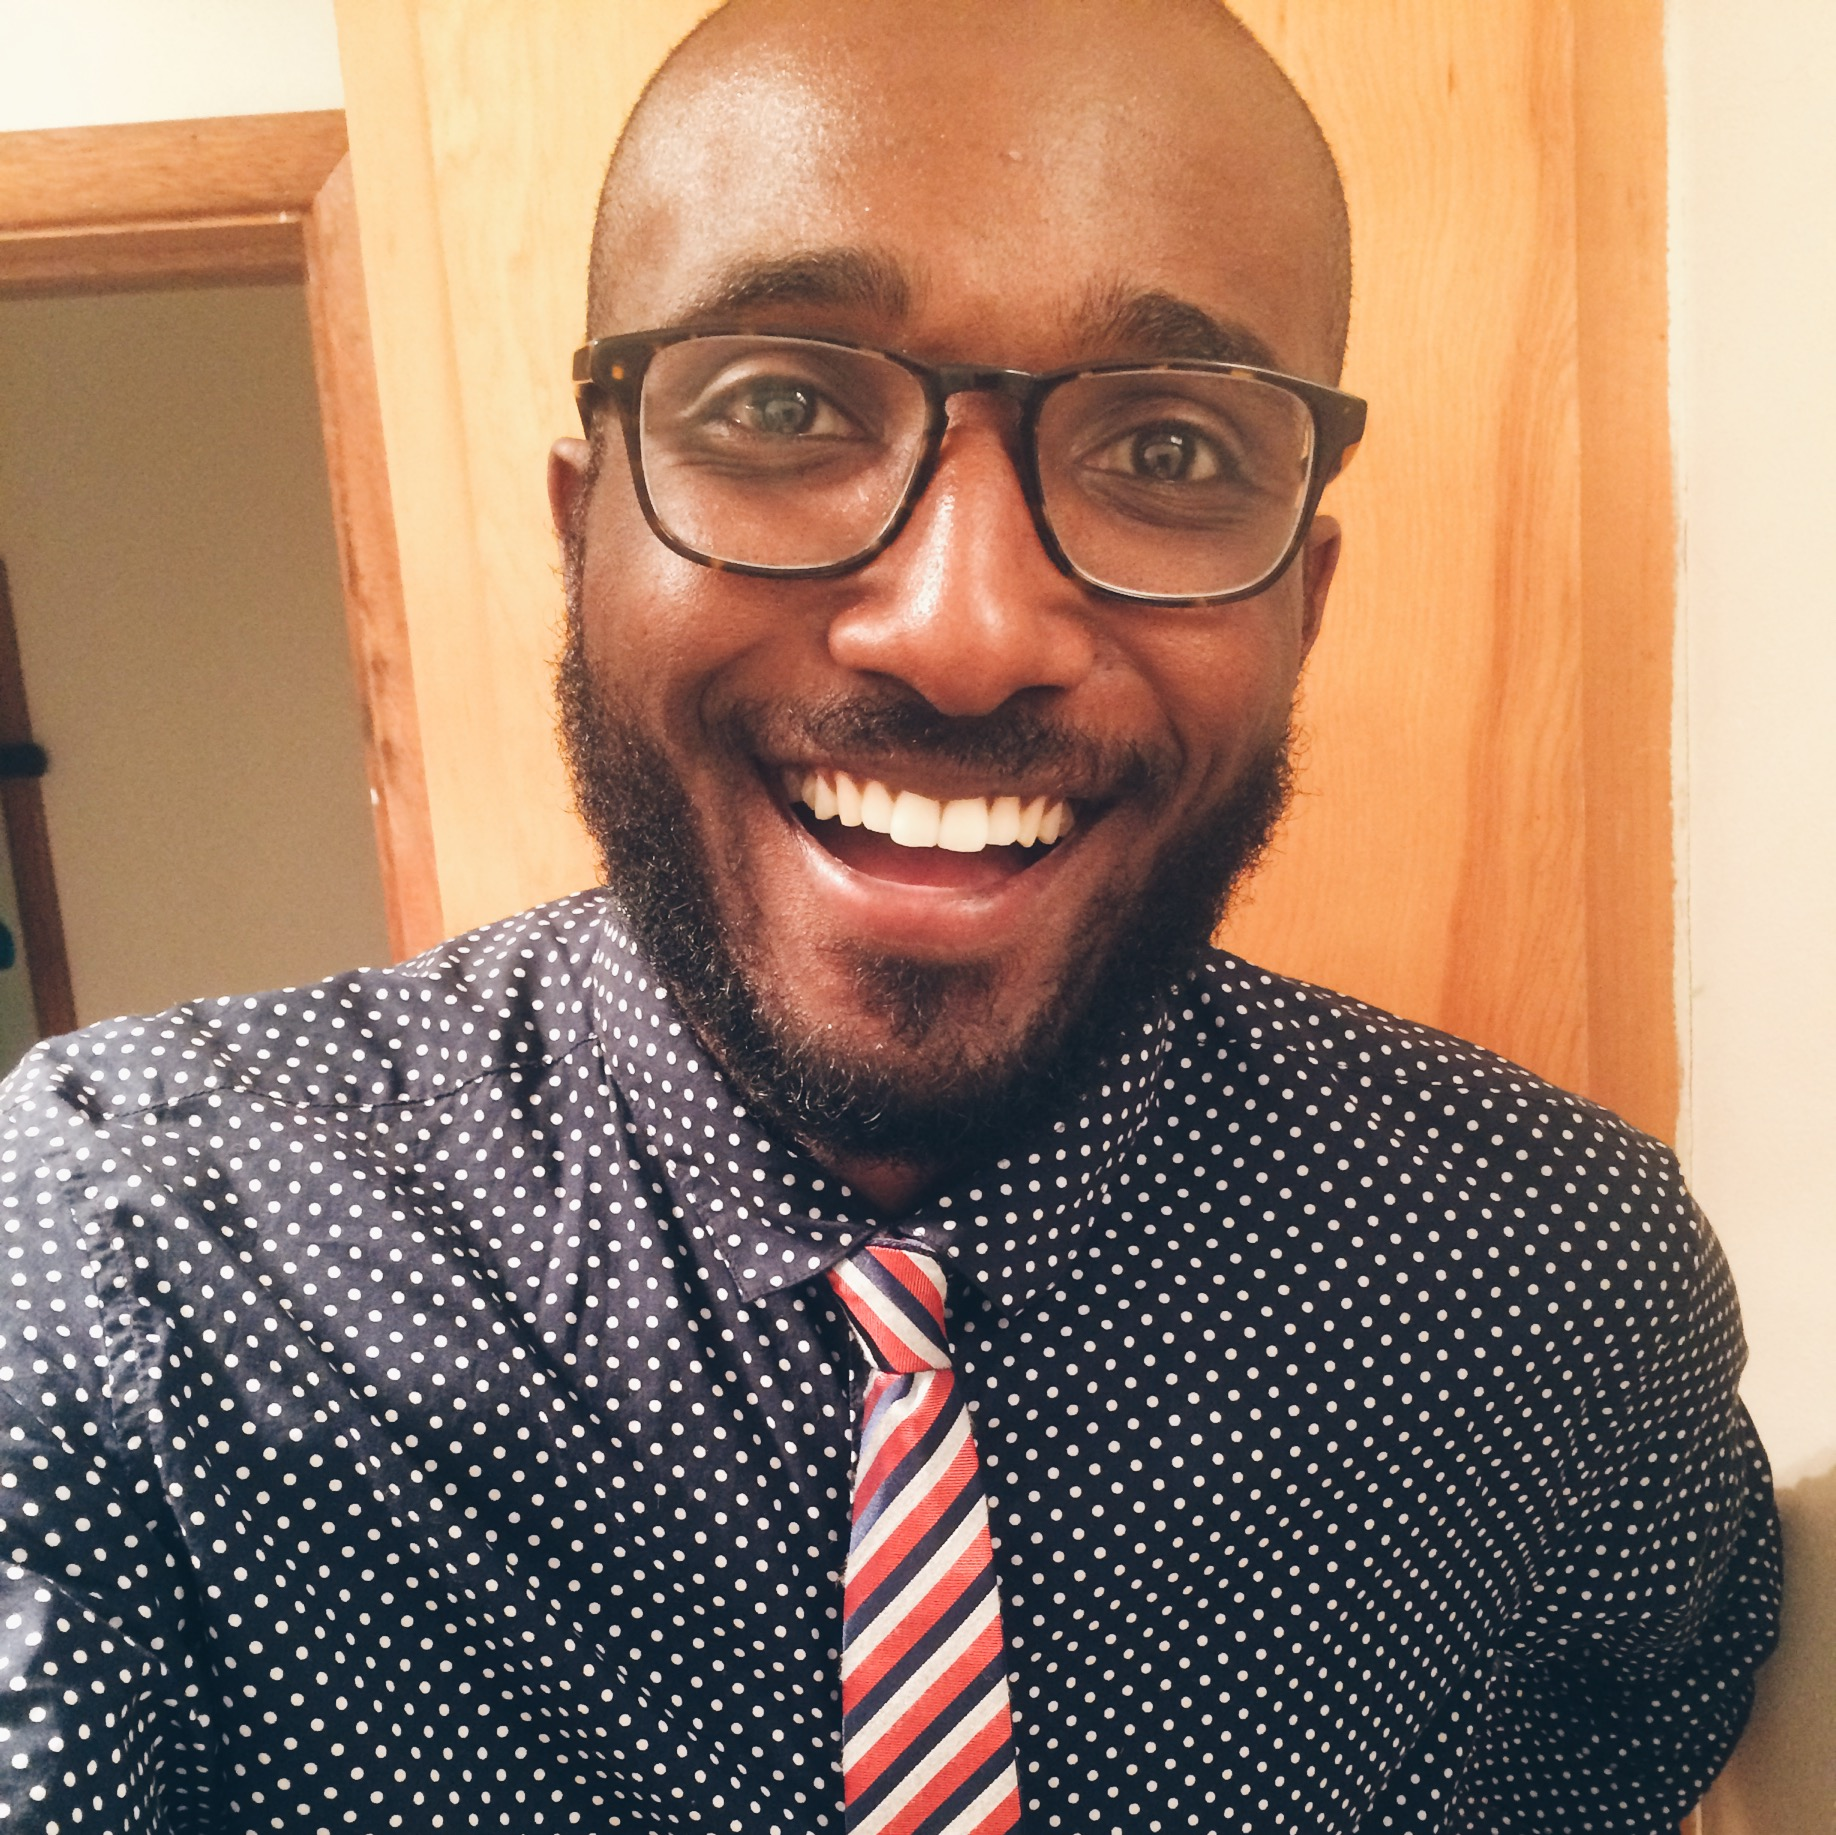 Anthony lyder, Circle Church student Pastor